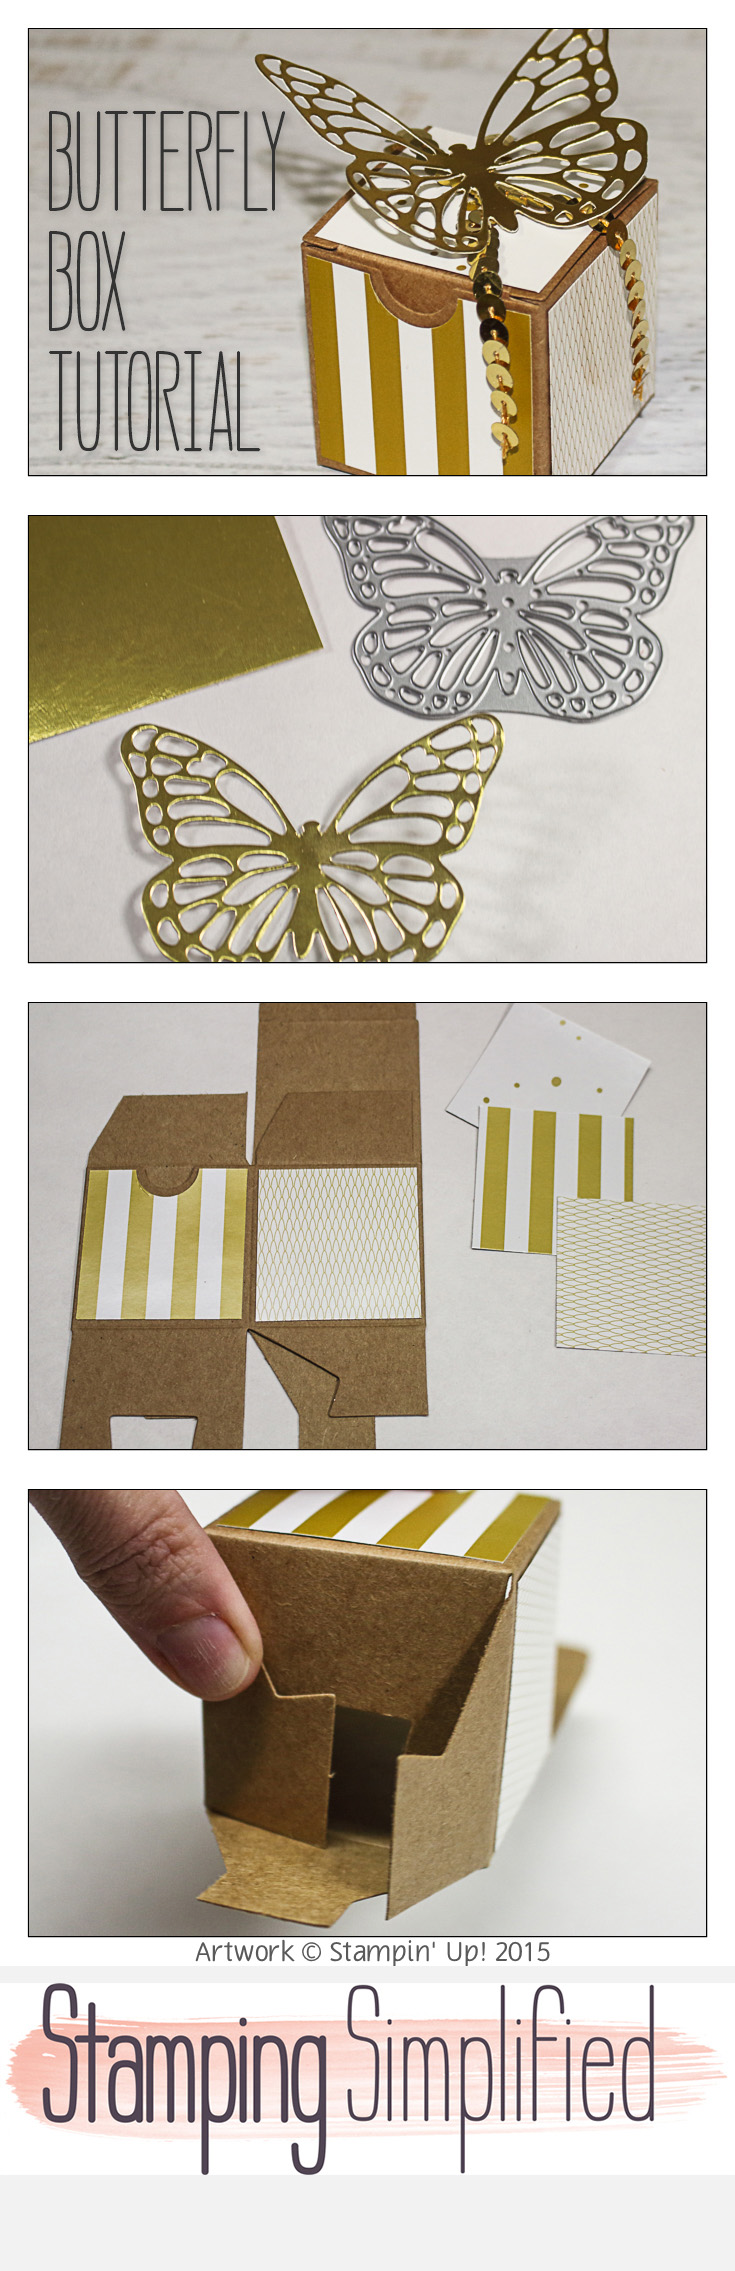 Butterfly Box Tutorial